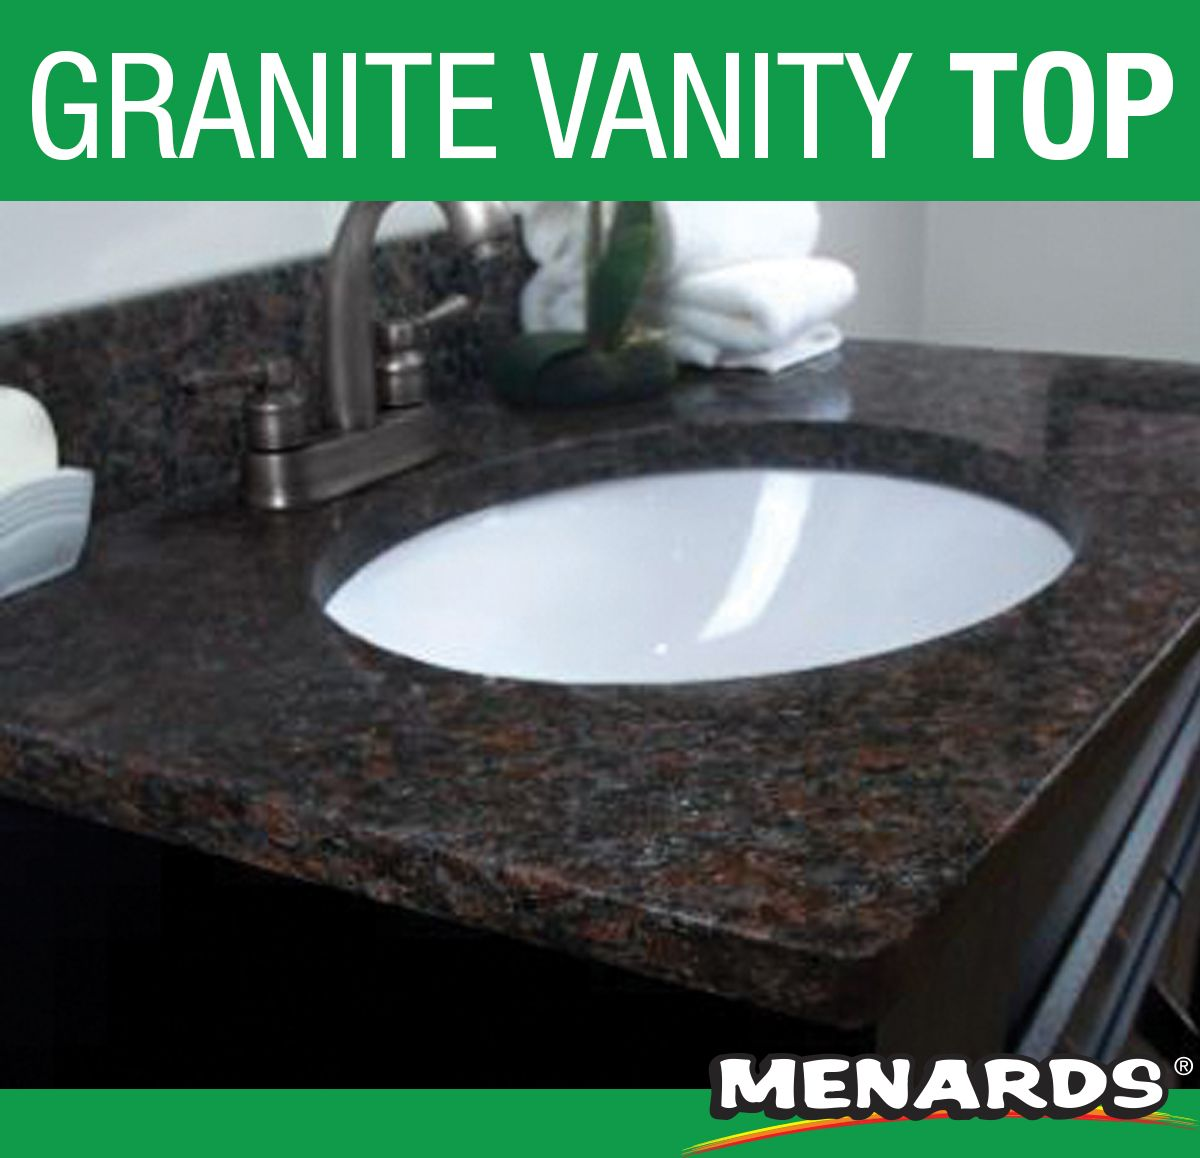 Update While Adding Value To Your Bathroom With This Beautiful Tuscany Maintenance Free Granite Vanity Top Granite Vanity Tops Bathroom Vanity Tops Home Spa